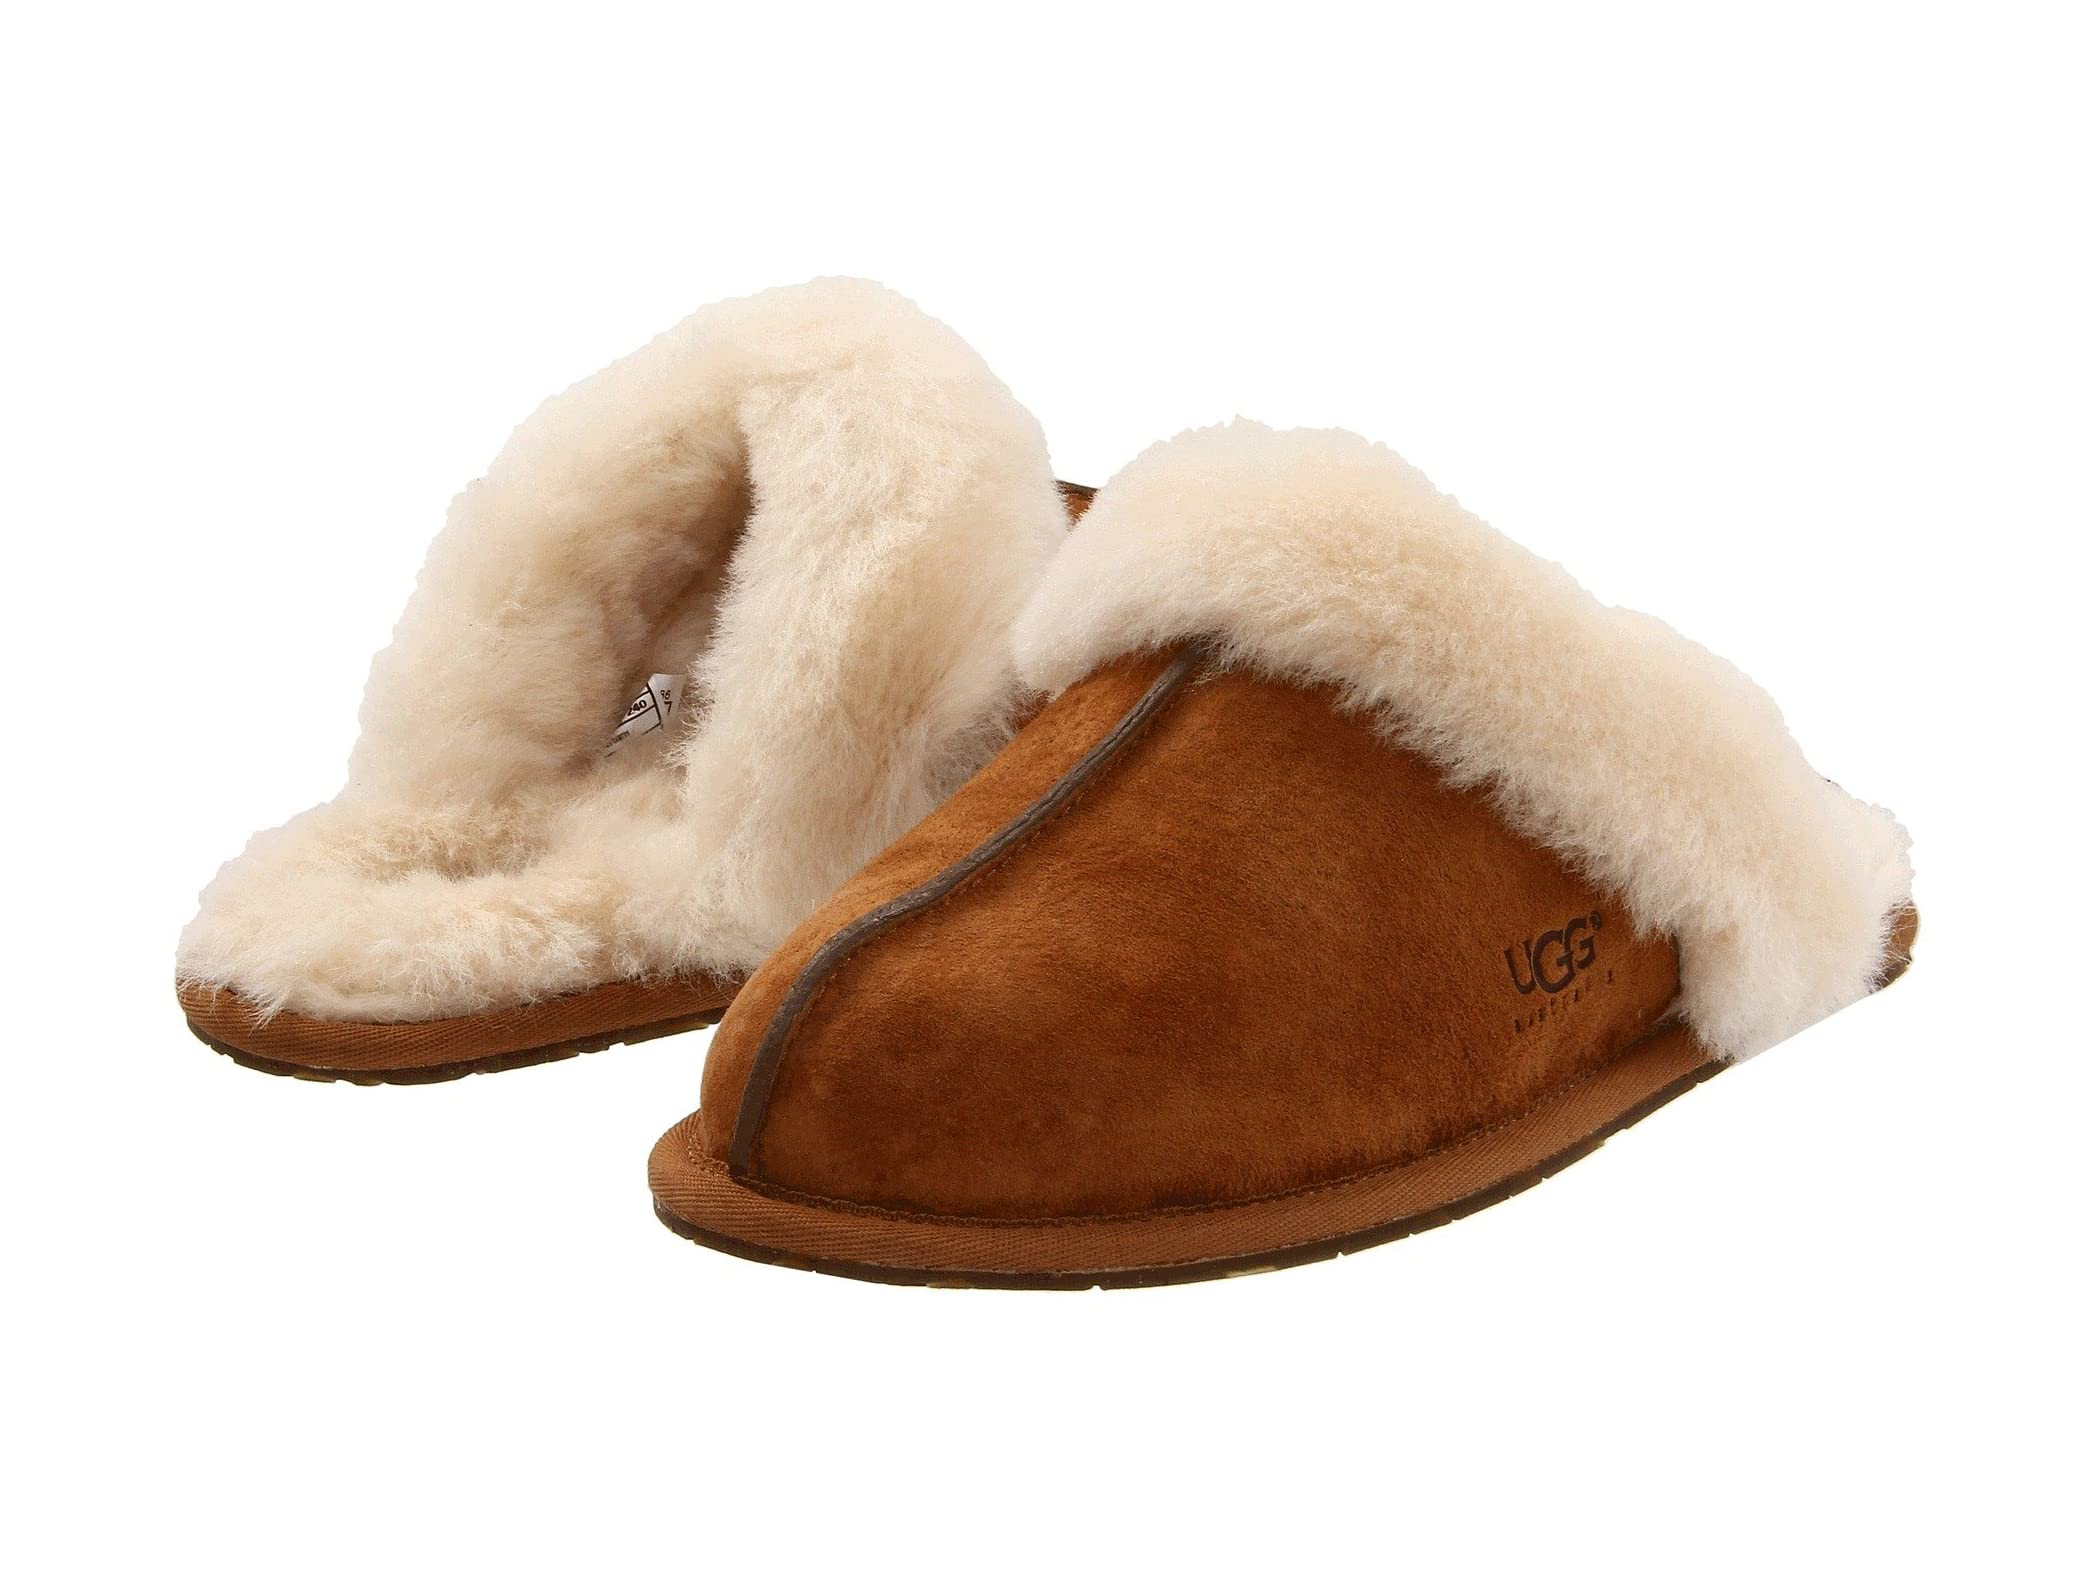 house shoes for women, ugg scuffette slipper